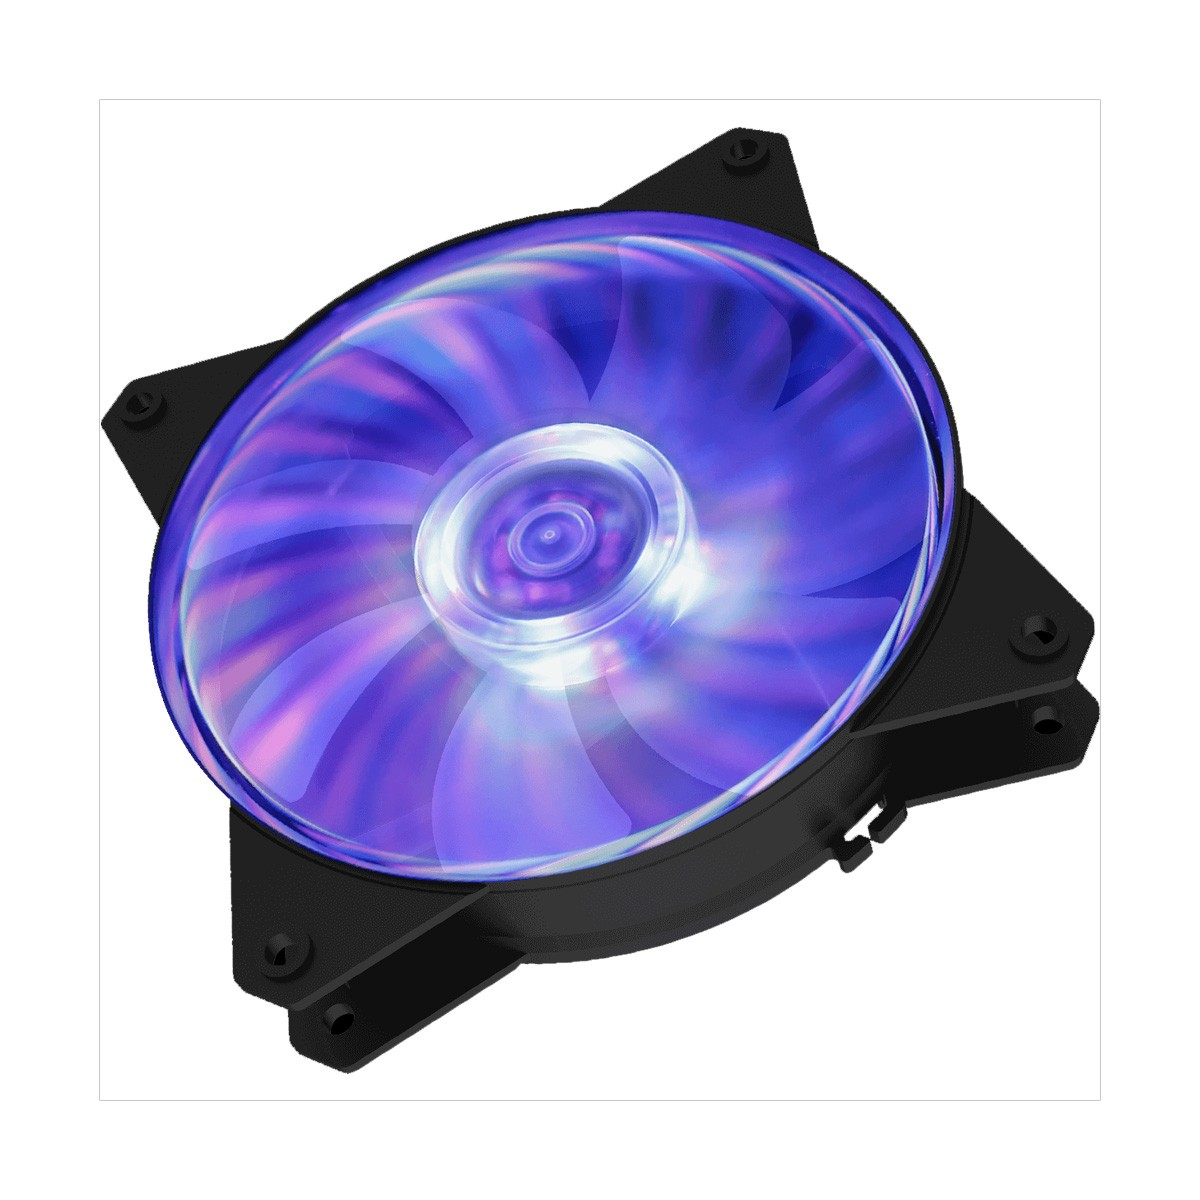 Cooler Master Masterfan Pro Lite 120mm RGB Casing Cooling Fan